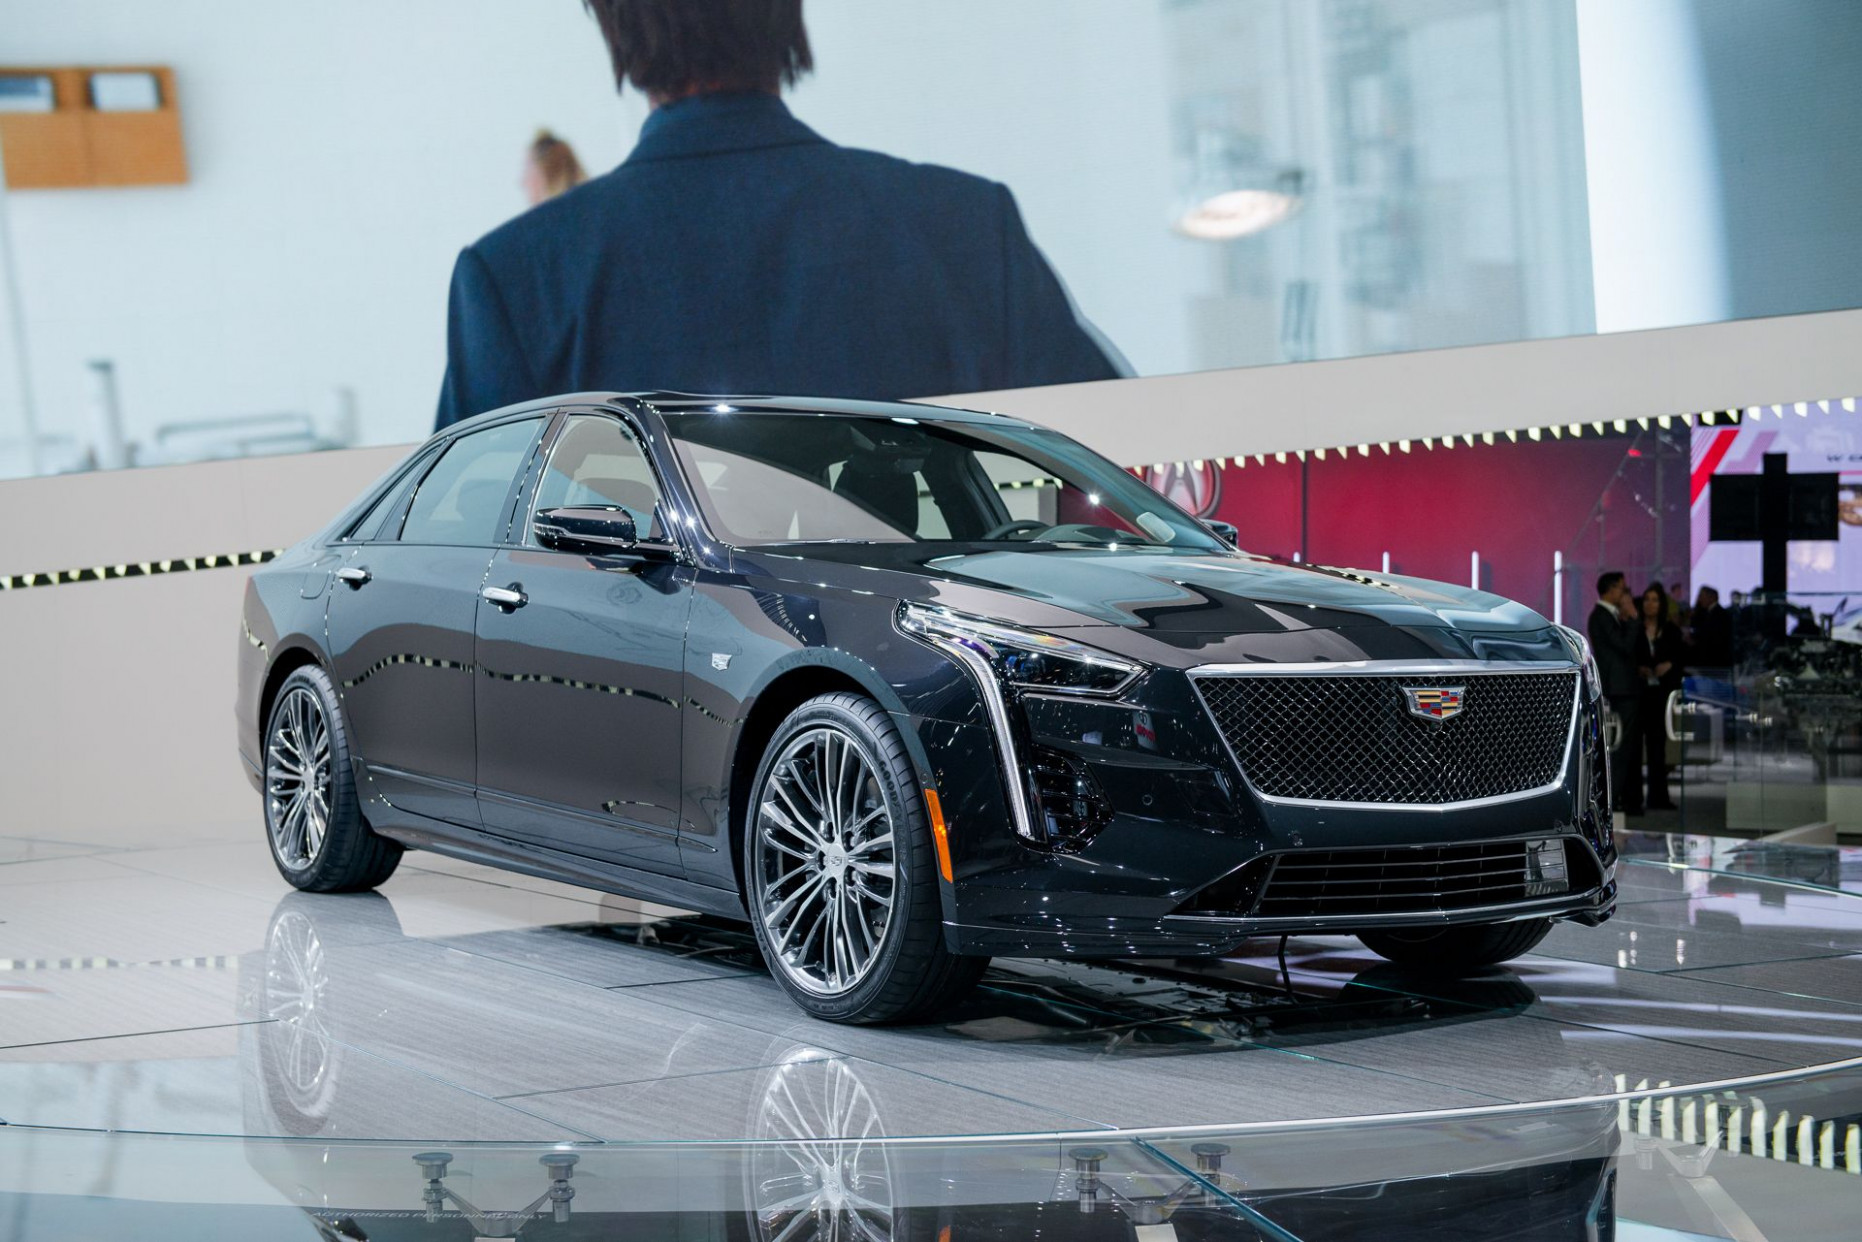 used 8 cadillac ct8 Release Date 850*8 - used 8 cadillac ..